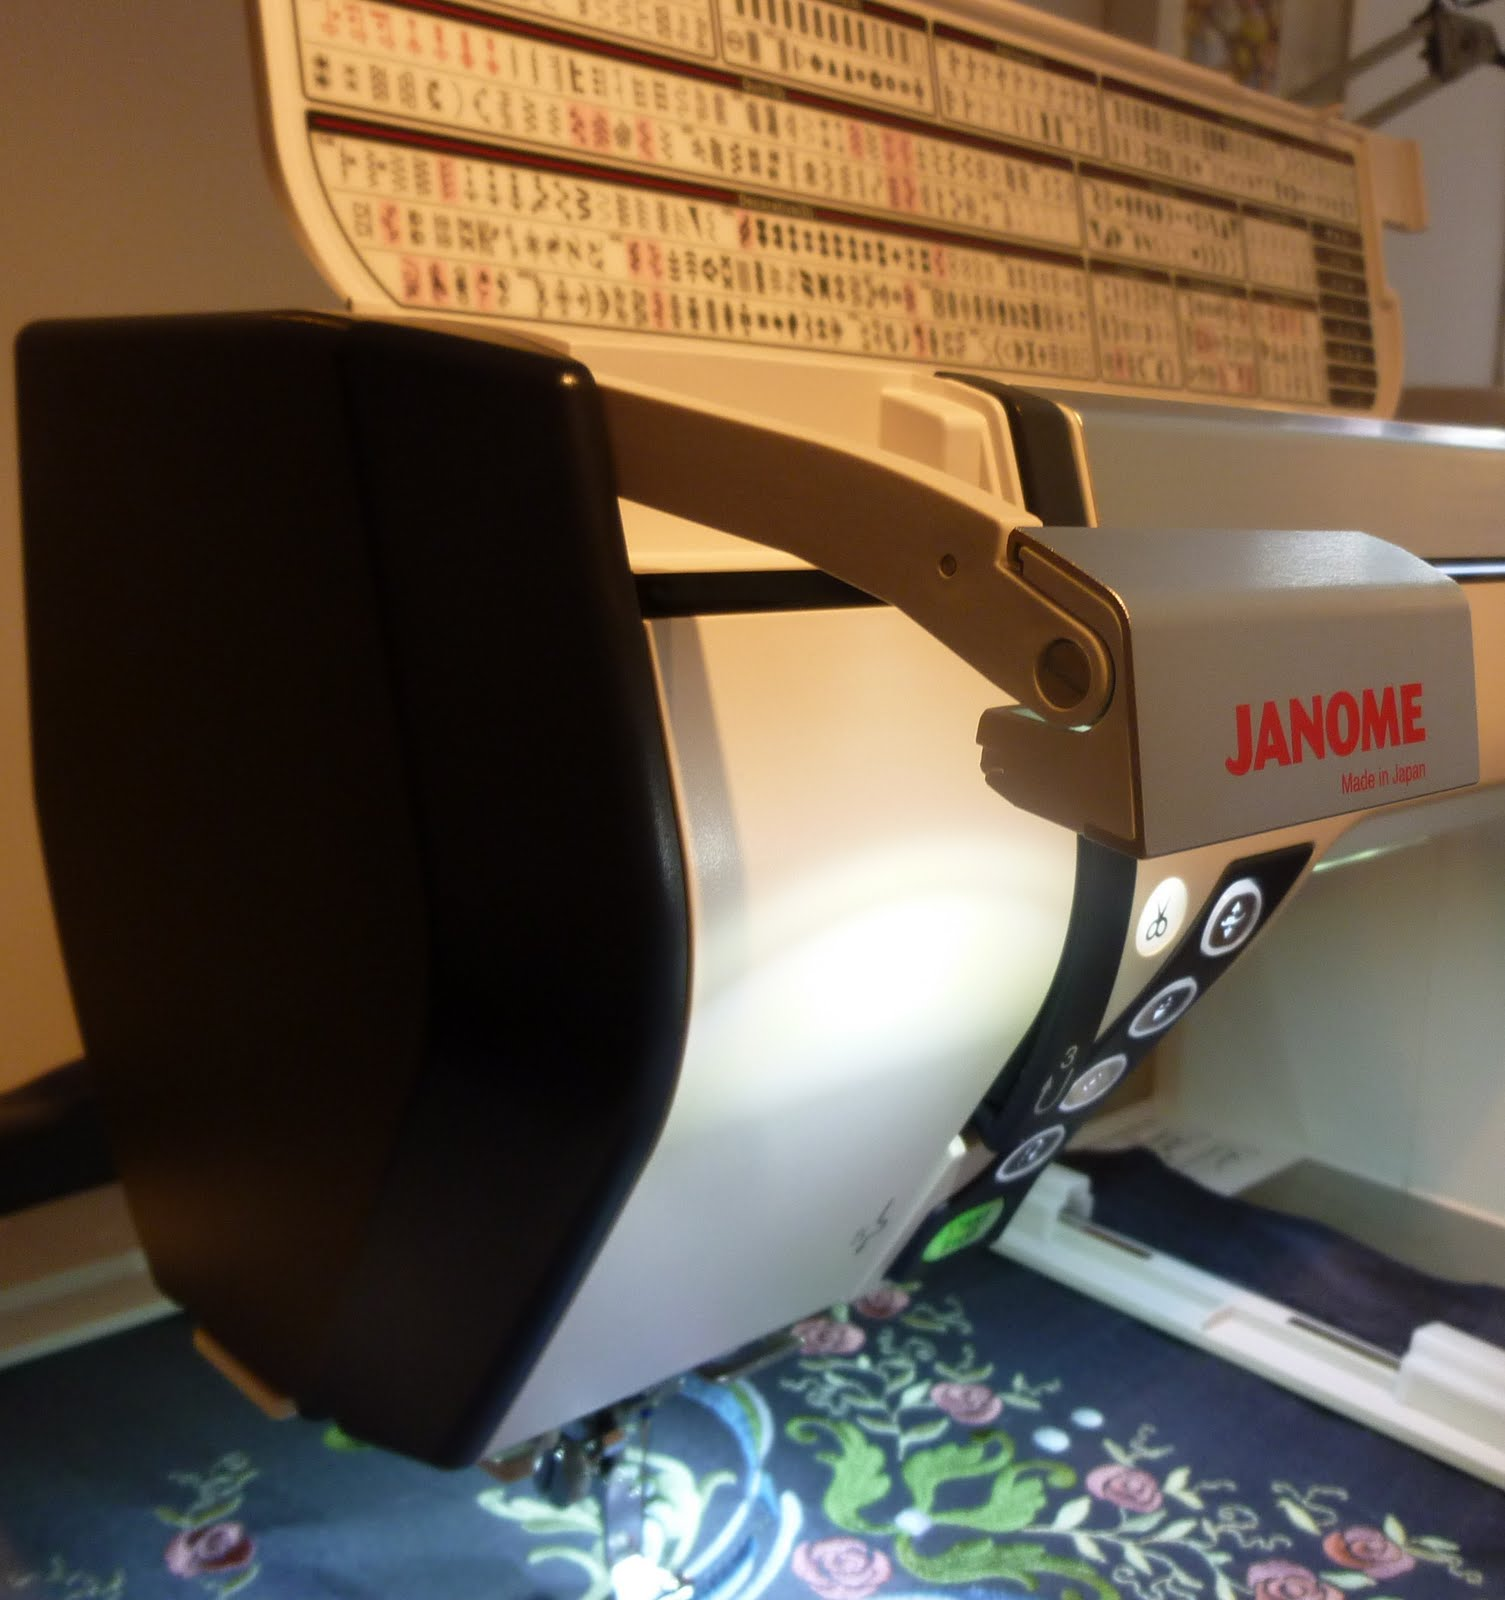 Janome memory craft 12000 - The Light Retracts Back Into The Machine When You Are Not Using It And Their Is Also A Acuview Magnifier To Help See Stitching Around The Needle